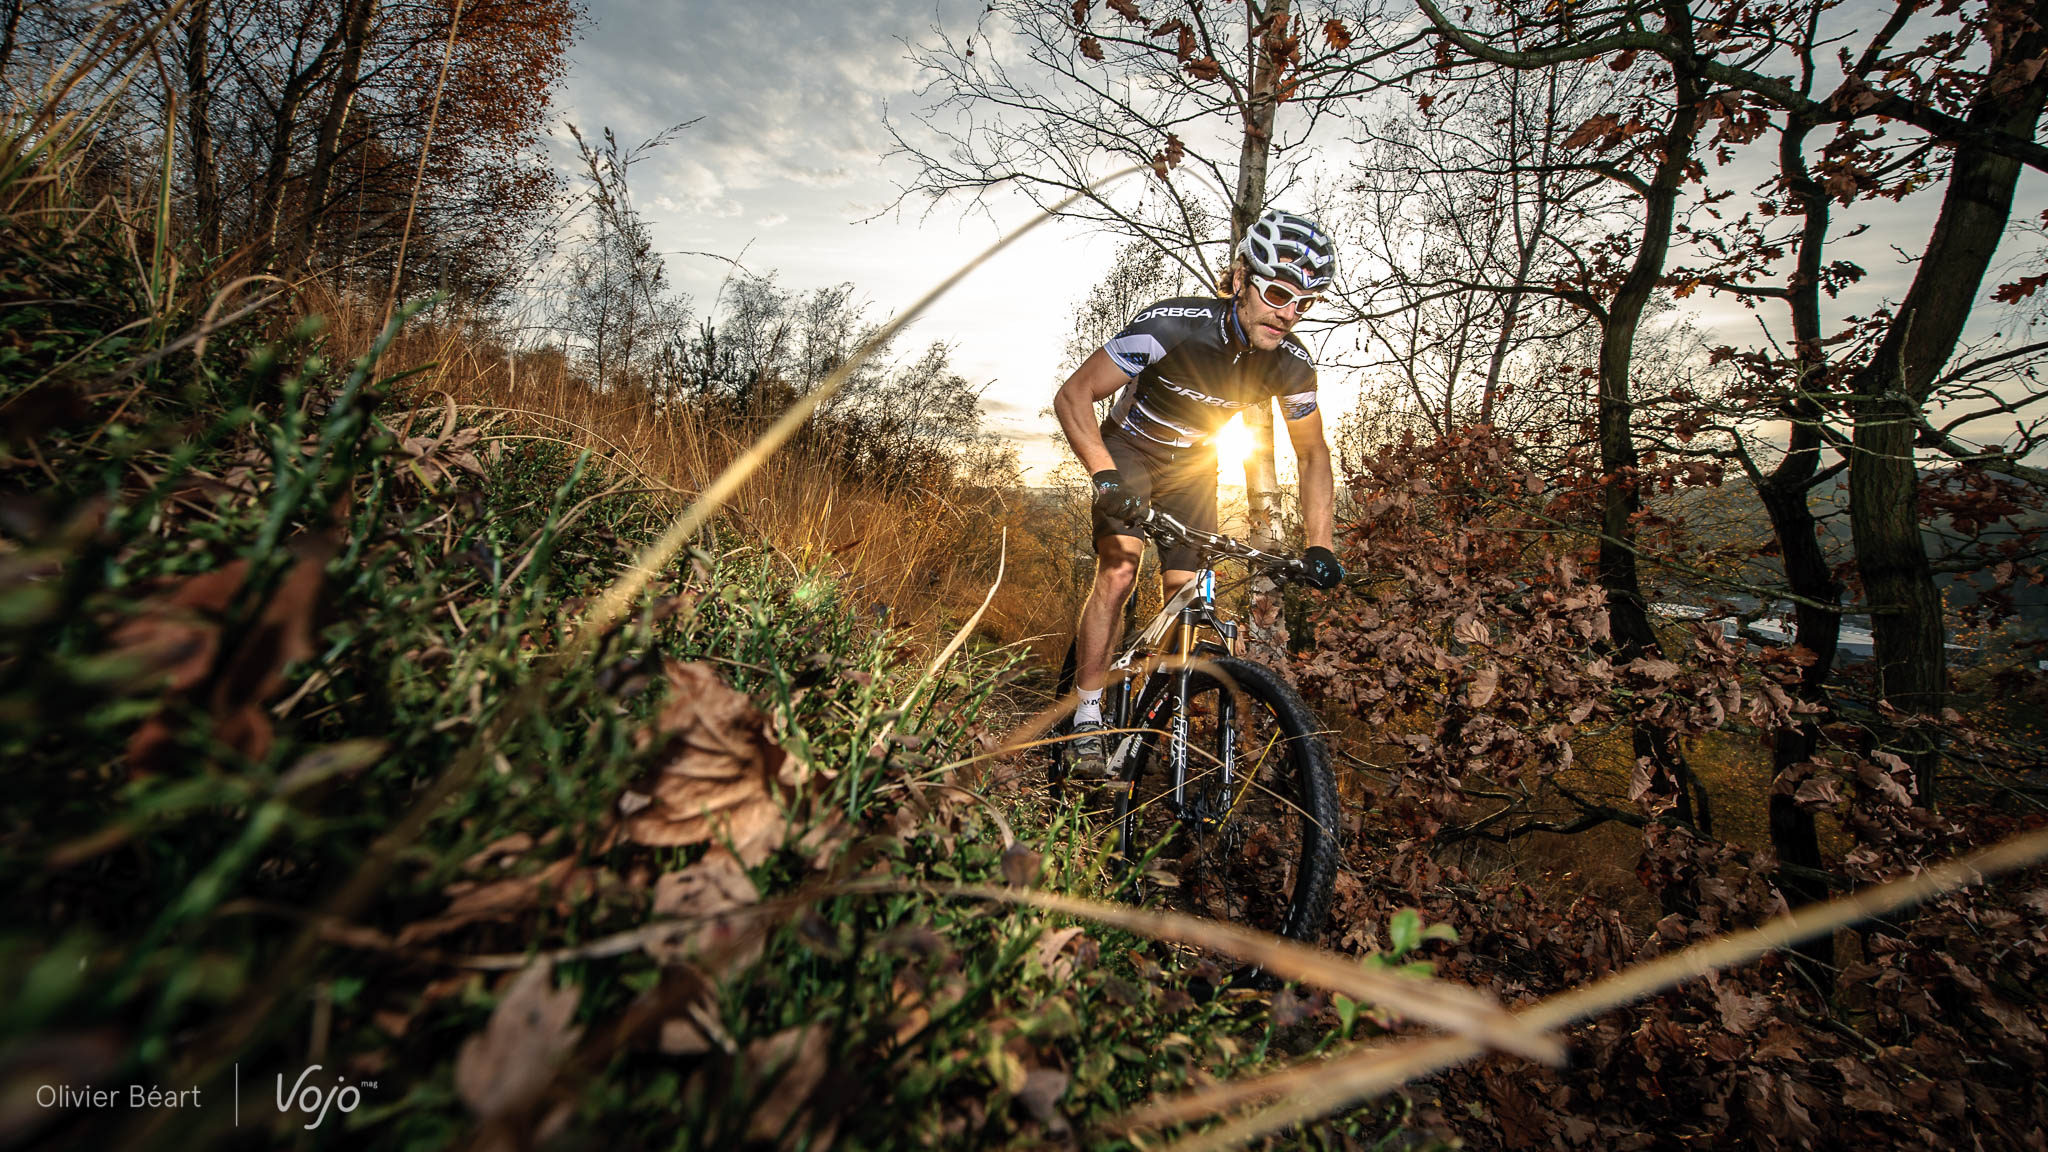 Orbea_Oiz_Action_Copyright_OBeart_VojoMag-2